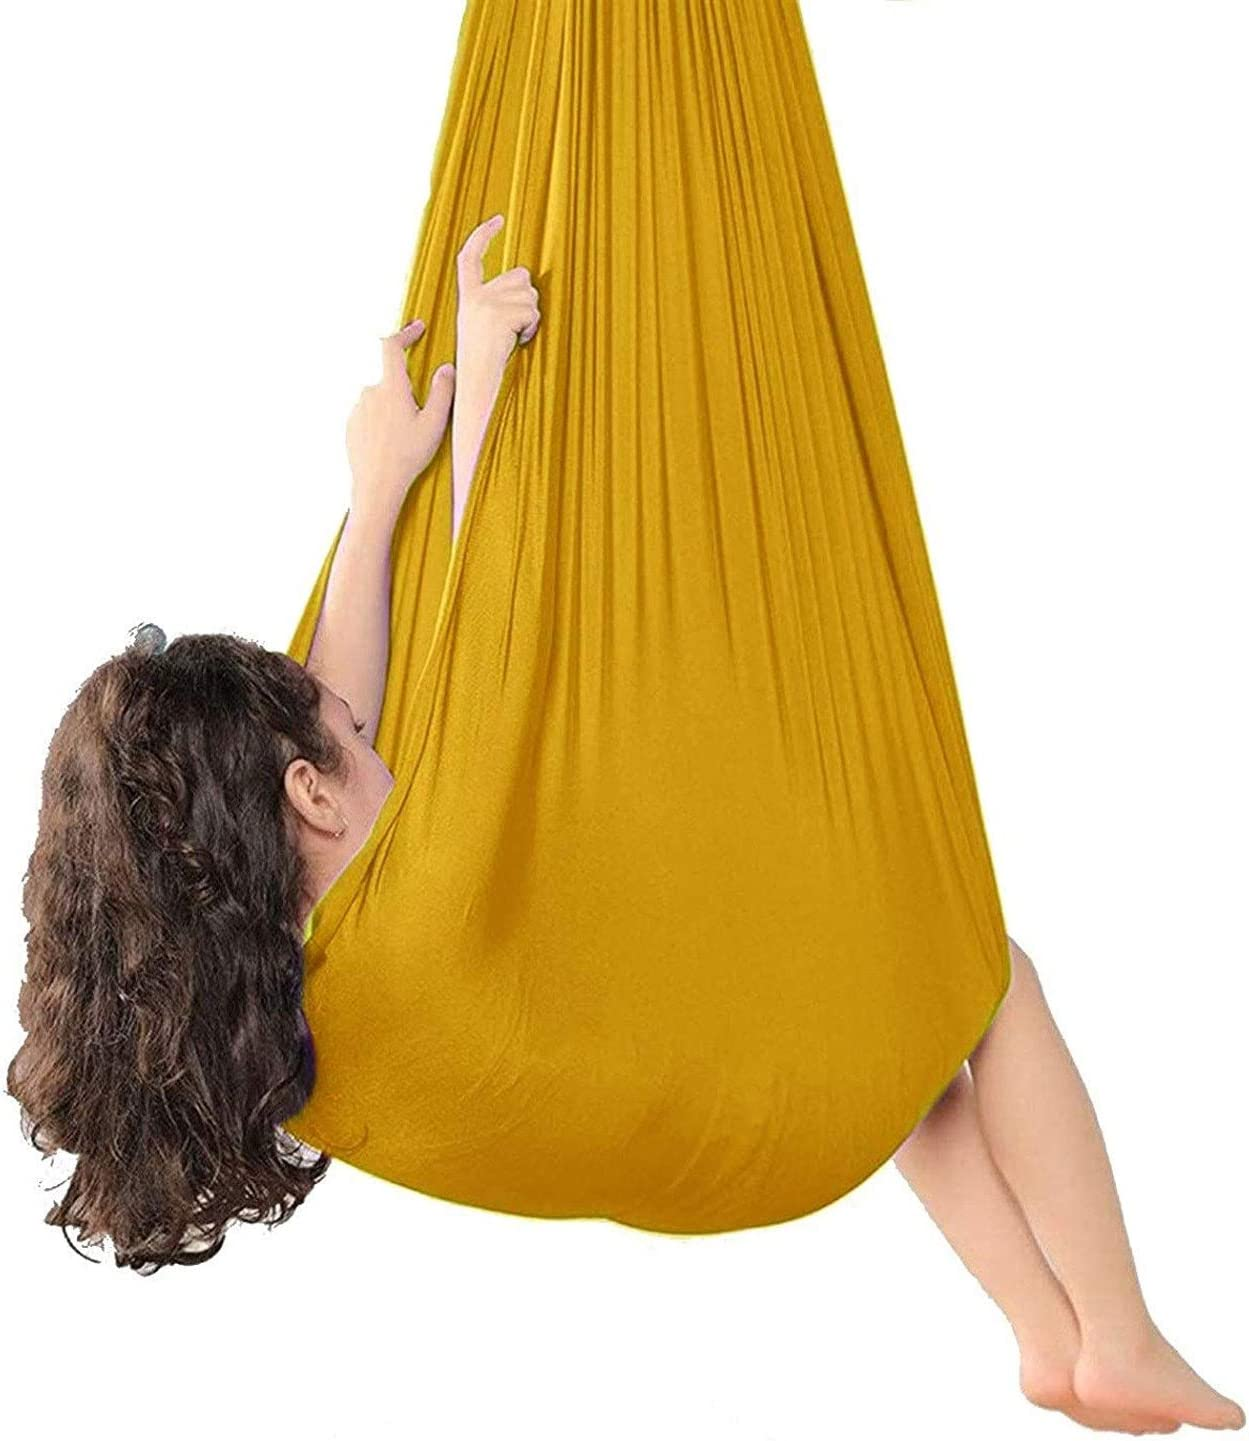 LSRRYD Cuddle Hammock Therapy Max 52% OFF Swing Elastic Ranking TOP18 Professional